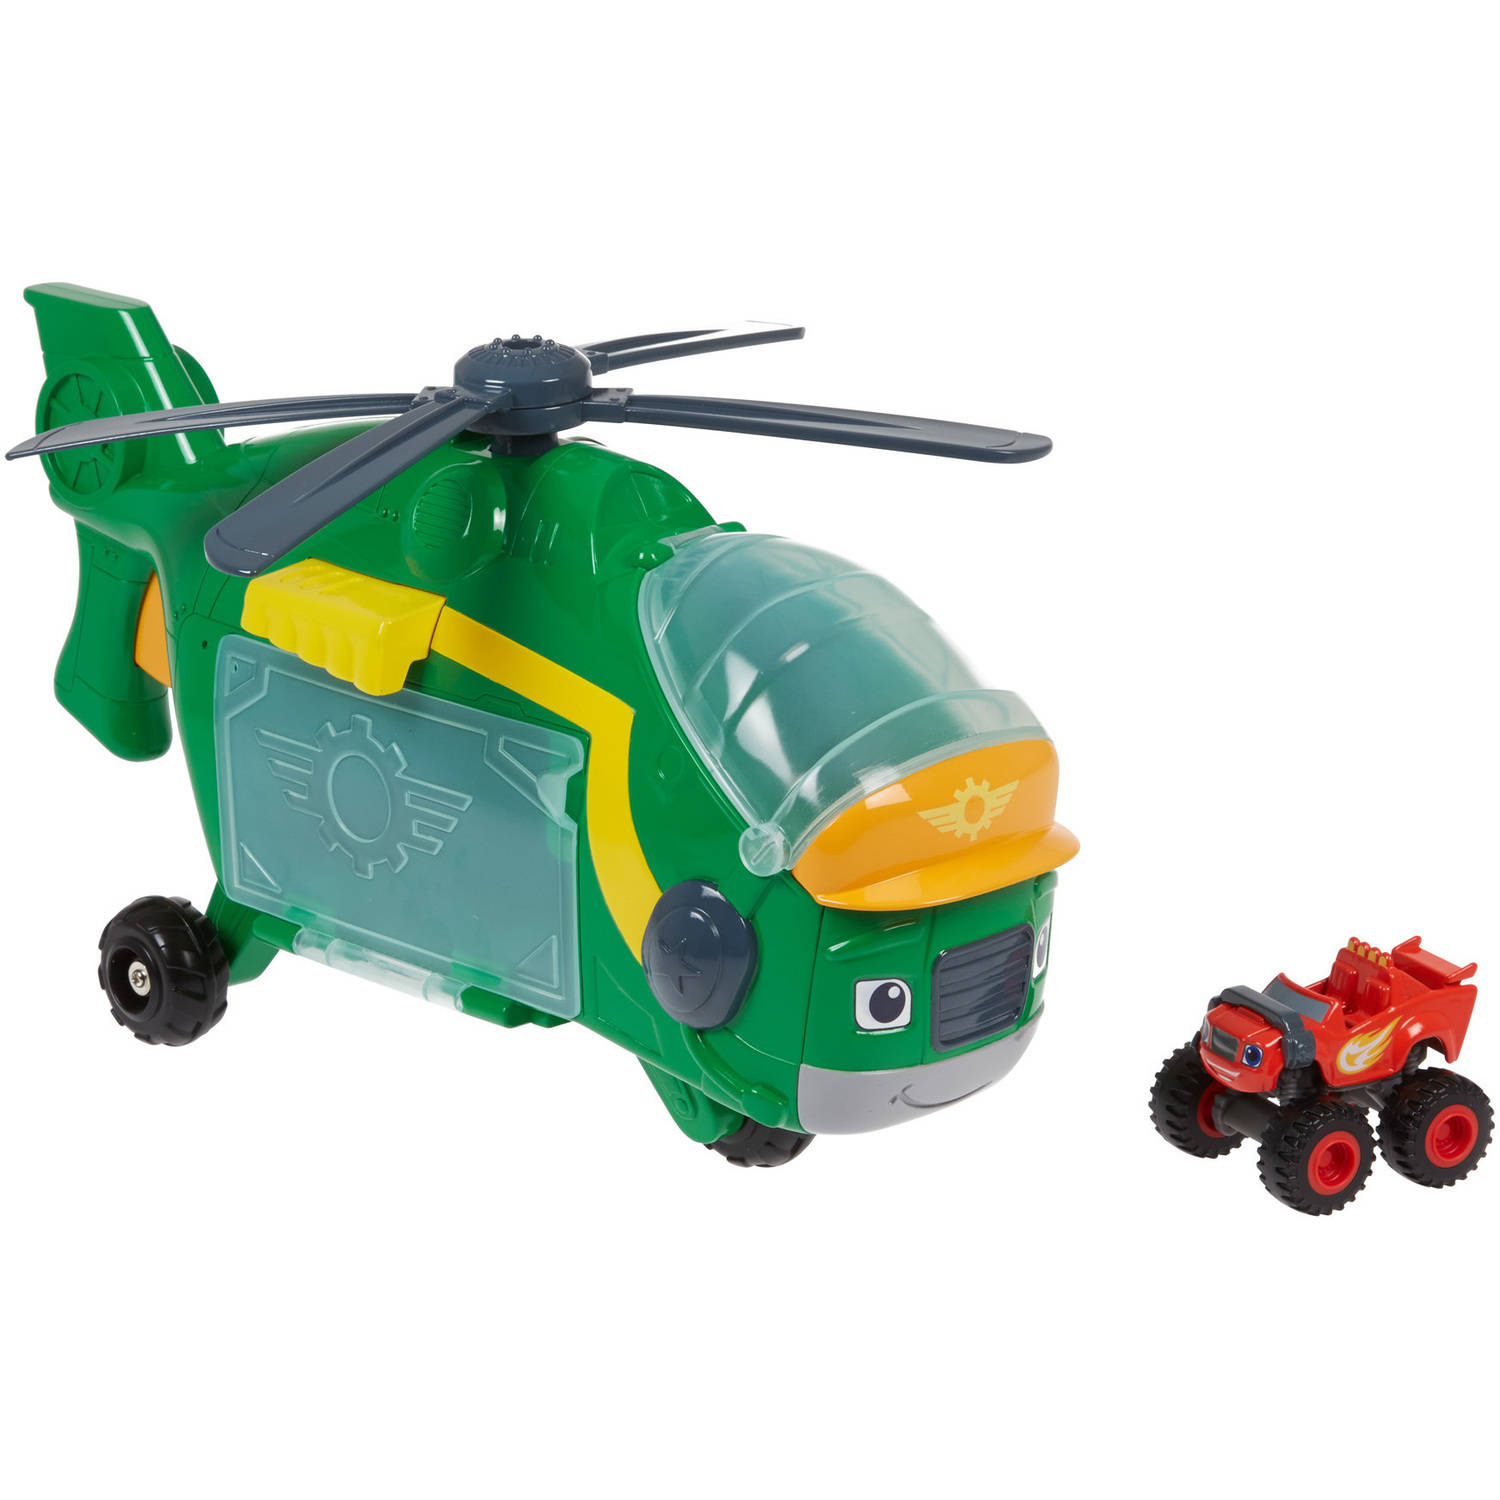 Nickelodeon Blaze and the Monster Machines Monster Copter Swoops by FO SHAN CITY NANHAI MATTEL